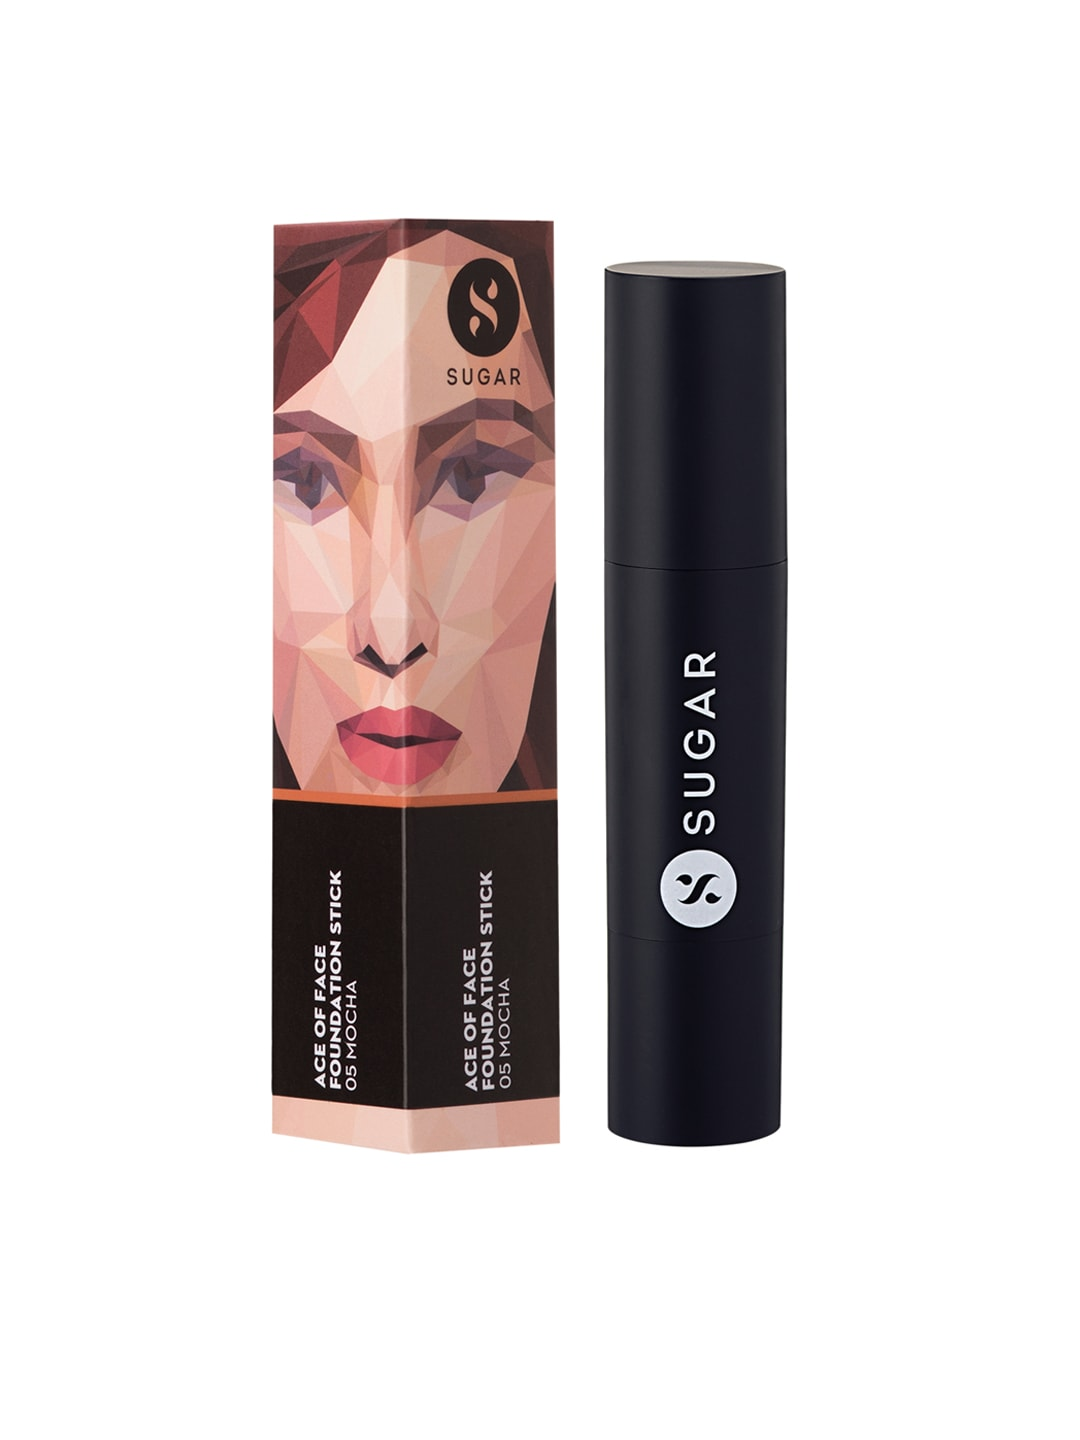 SUGAR Cosmetics Ace Of Face Foundation Stick 05 Mocha (Medium Tan) image